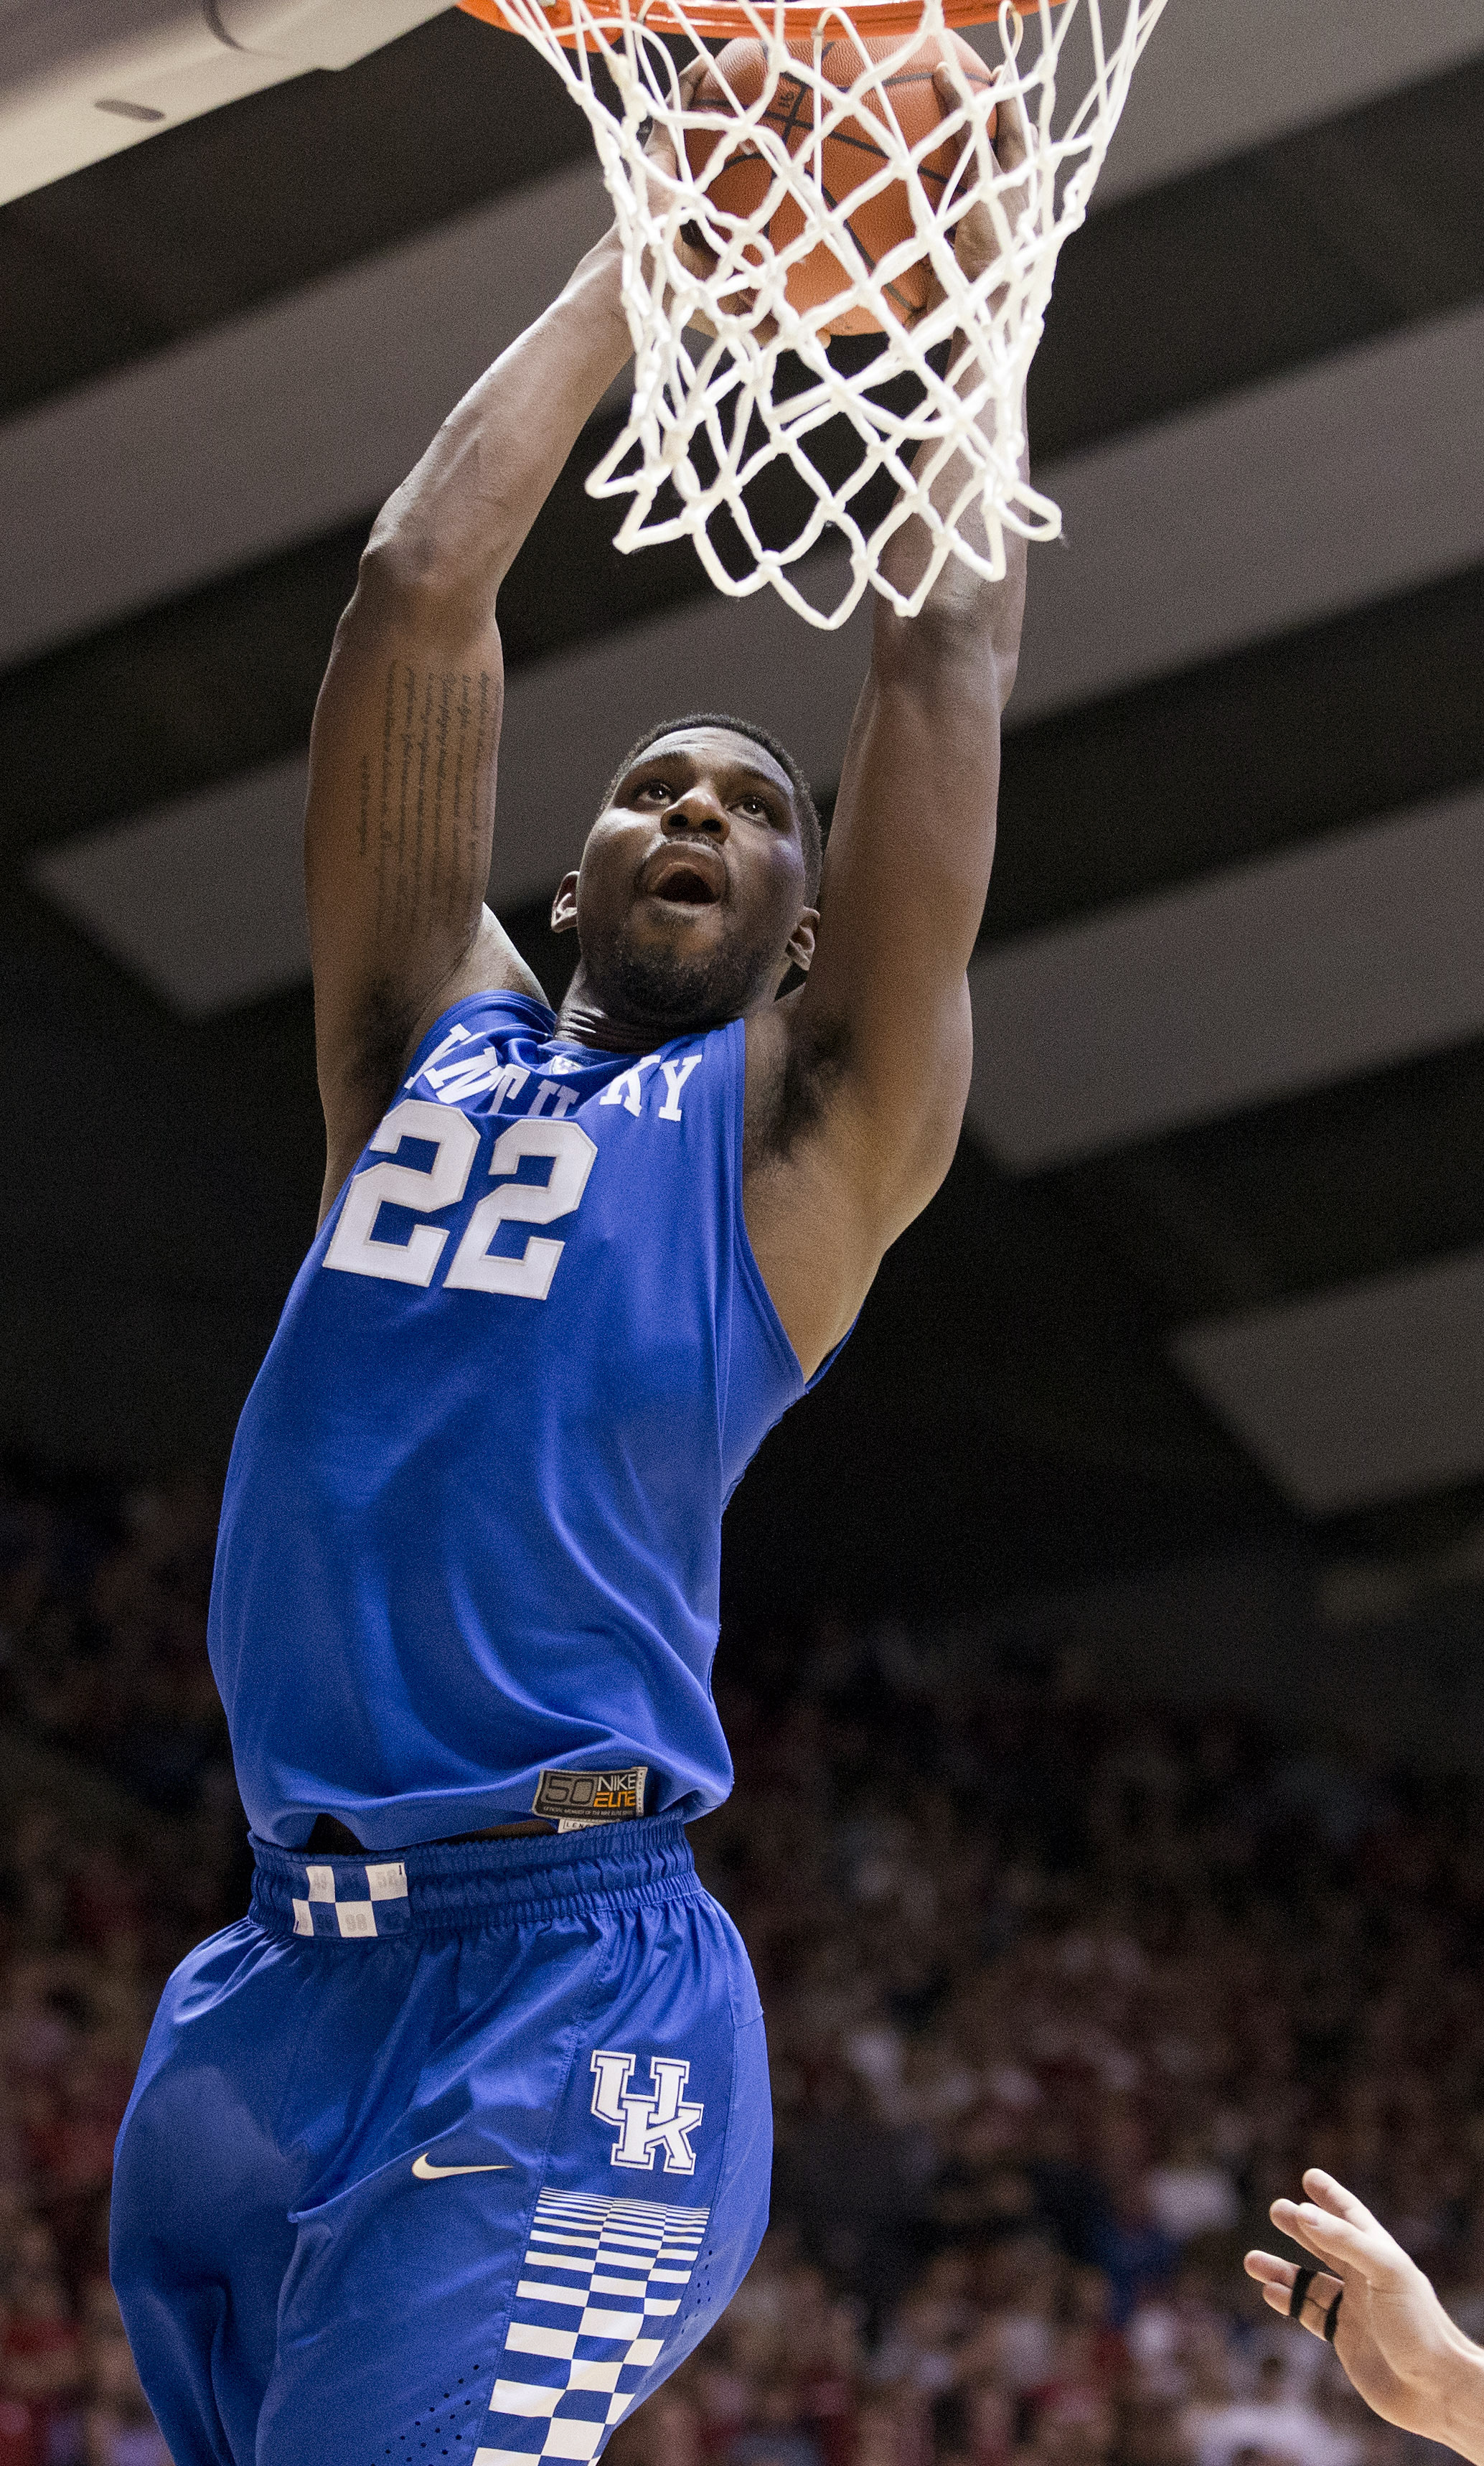 Kentucky forward Alex Poythress scores during the first half of the team's NCAA college basketball game against Alabama, Saturday, Jan. 9, 2016, in Tuscaloosa, Ala. (AP Photo/Brynn Anderson)